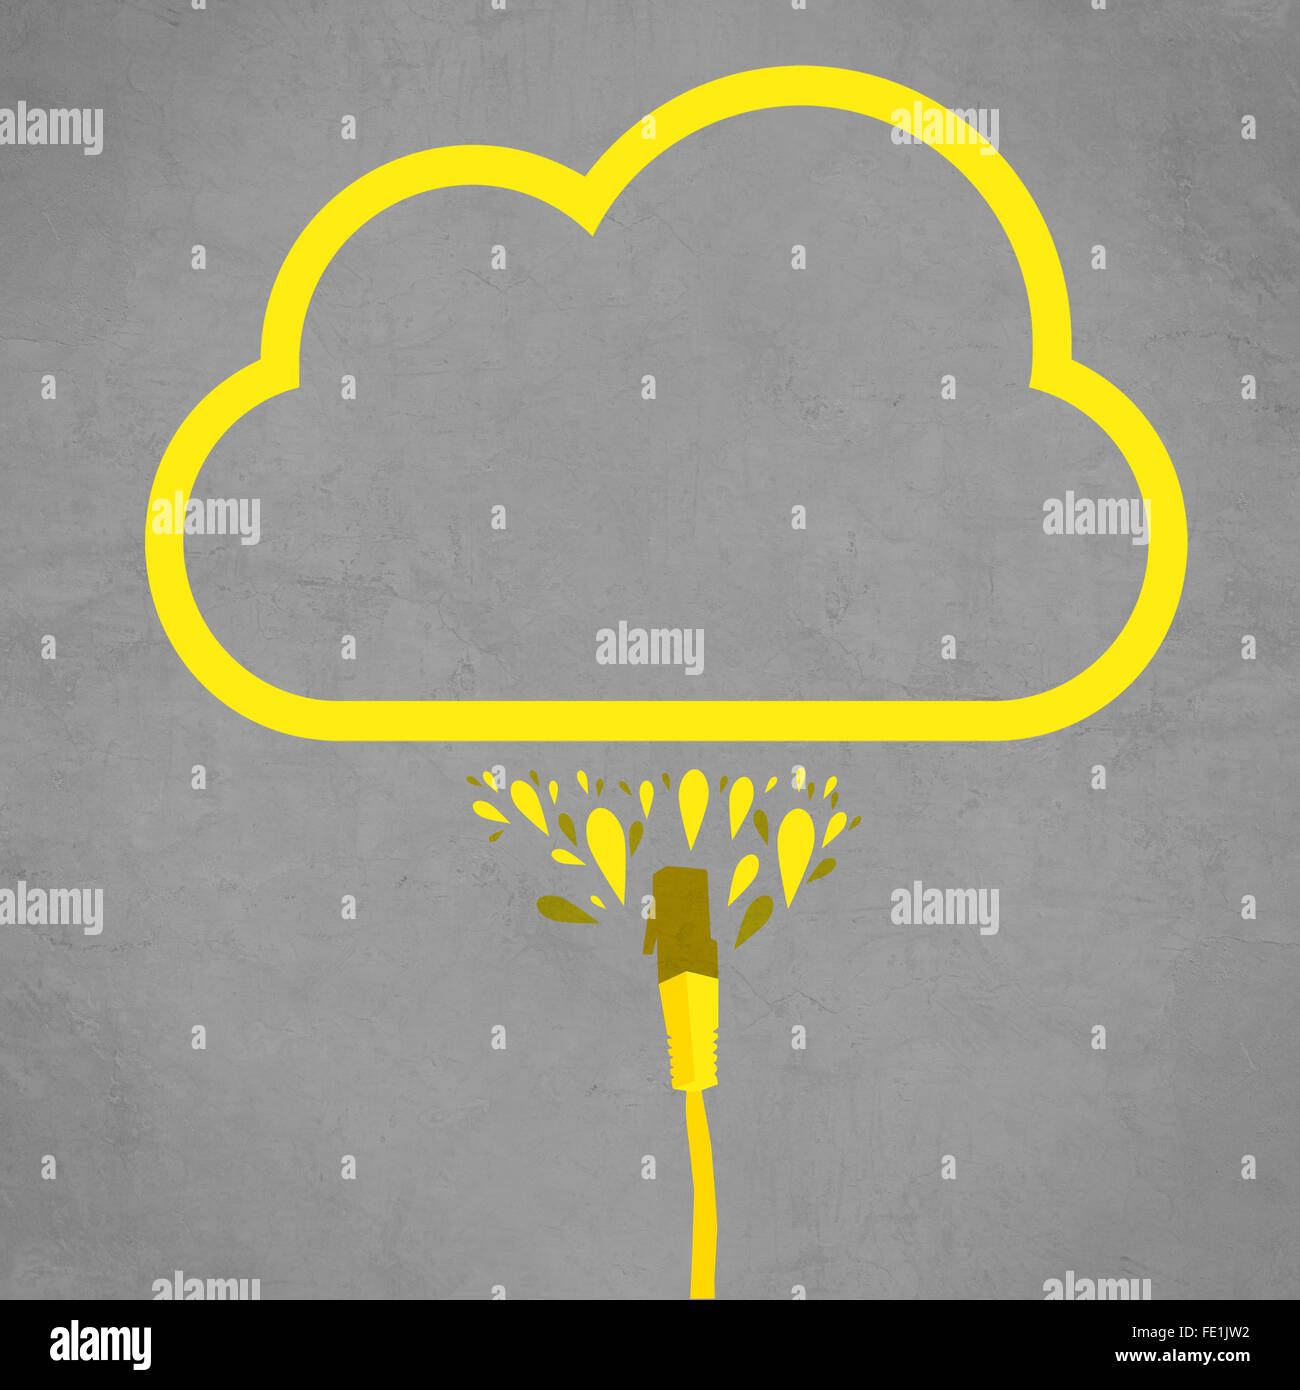 LAN cable connected to cloud service, simple flat line illustration of internet technology cloud computing concept. - Stock Image